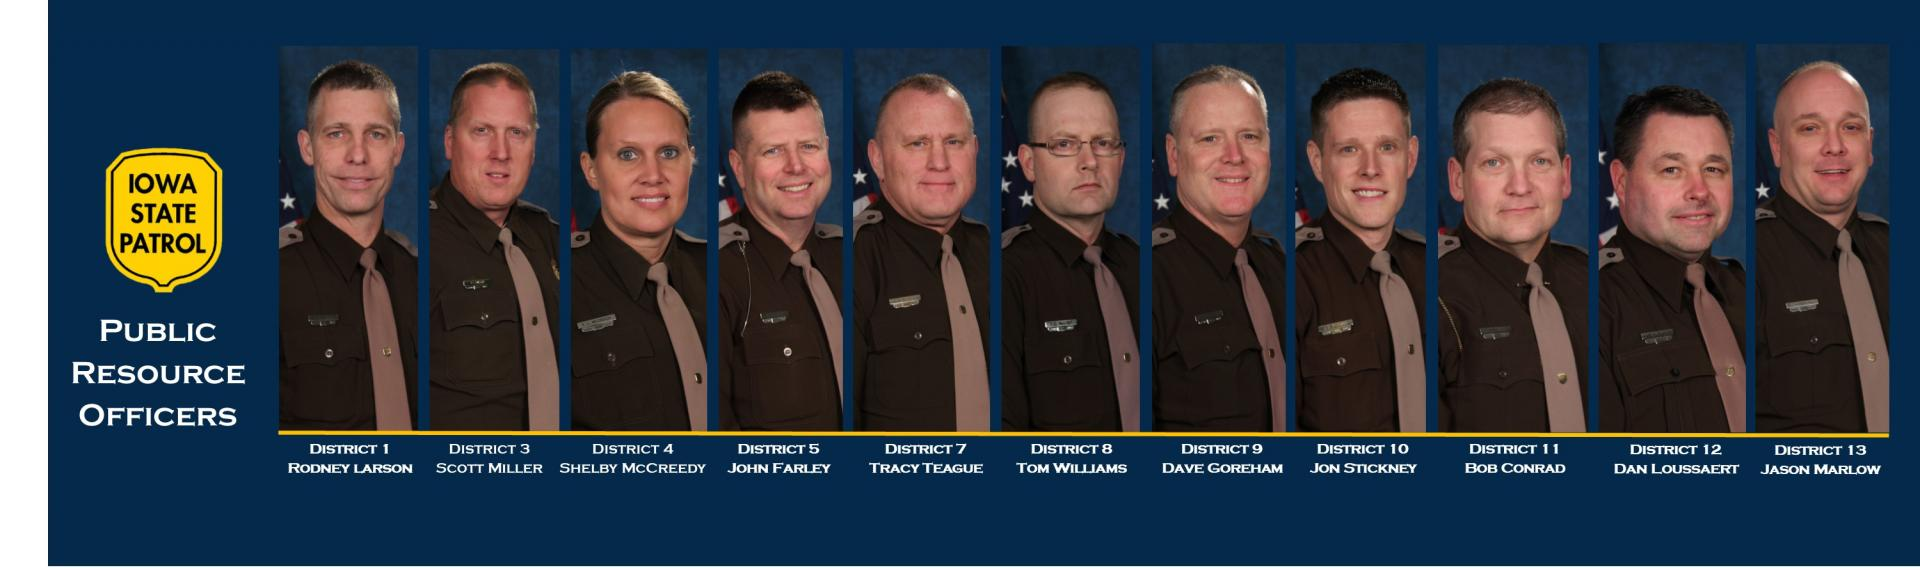 Collage photo of Iowa State Patrol's Public Resource Officers - Our team brings valuable resources to Iowa's Schools and community organizations.